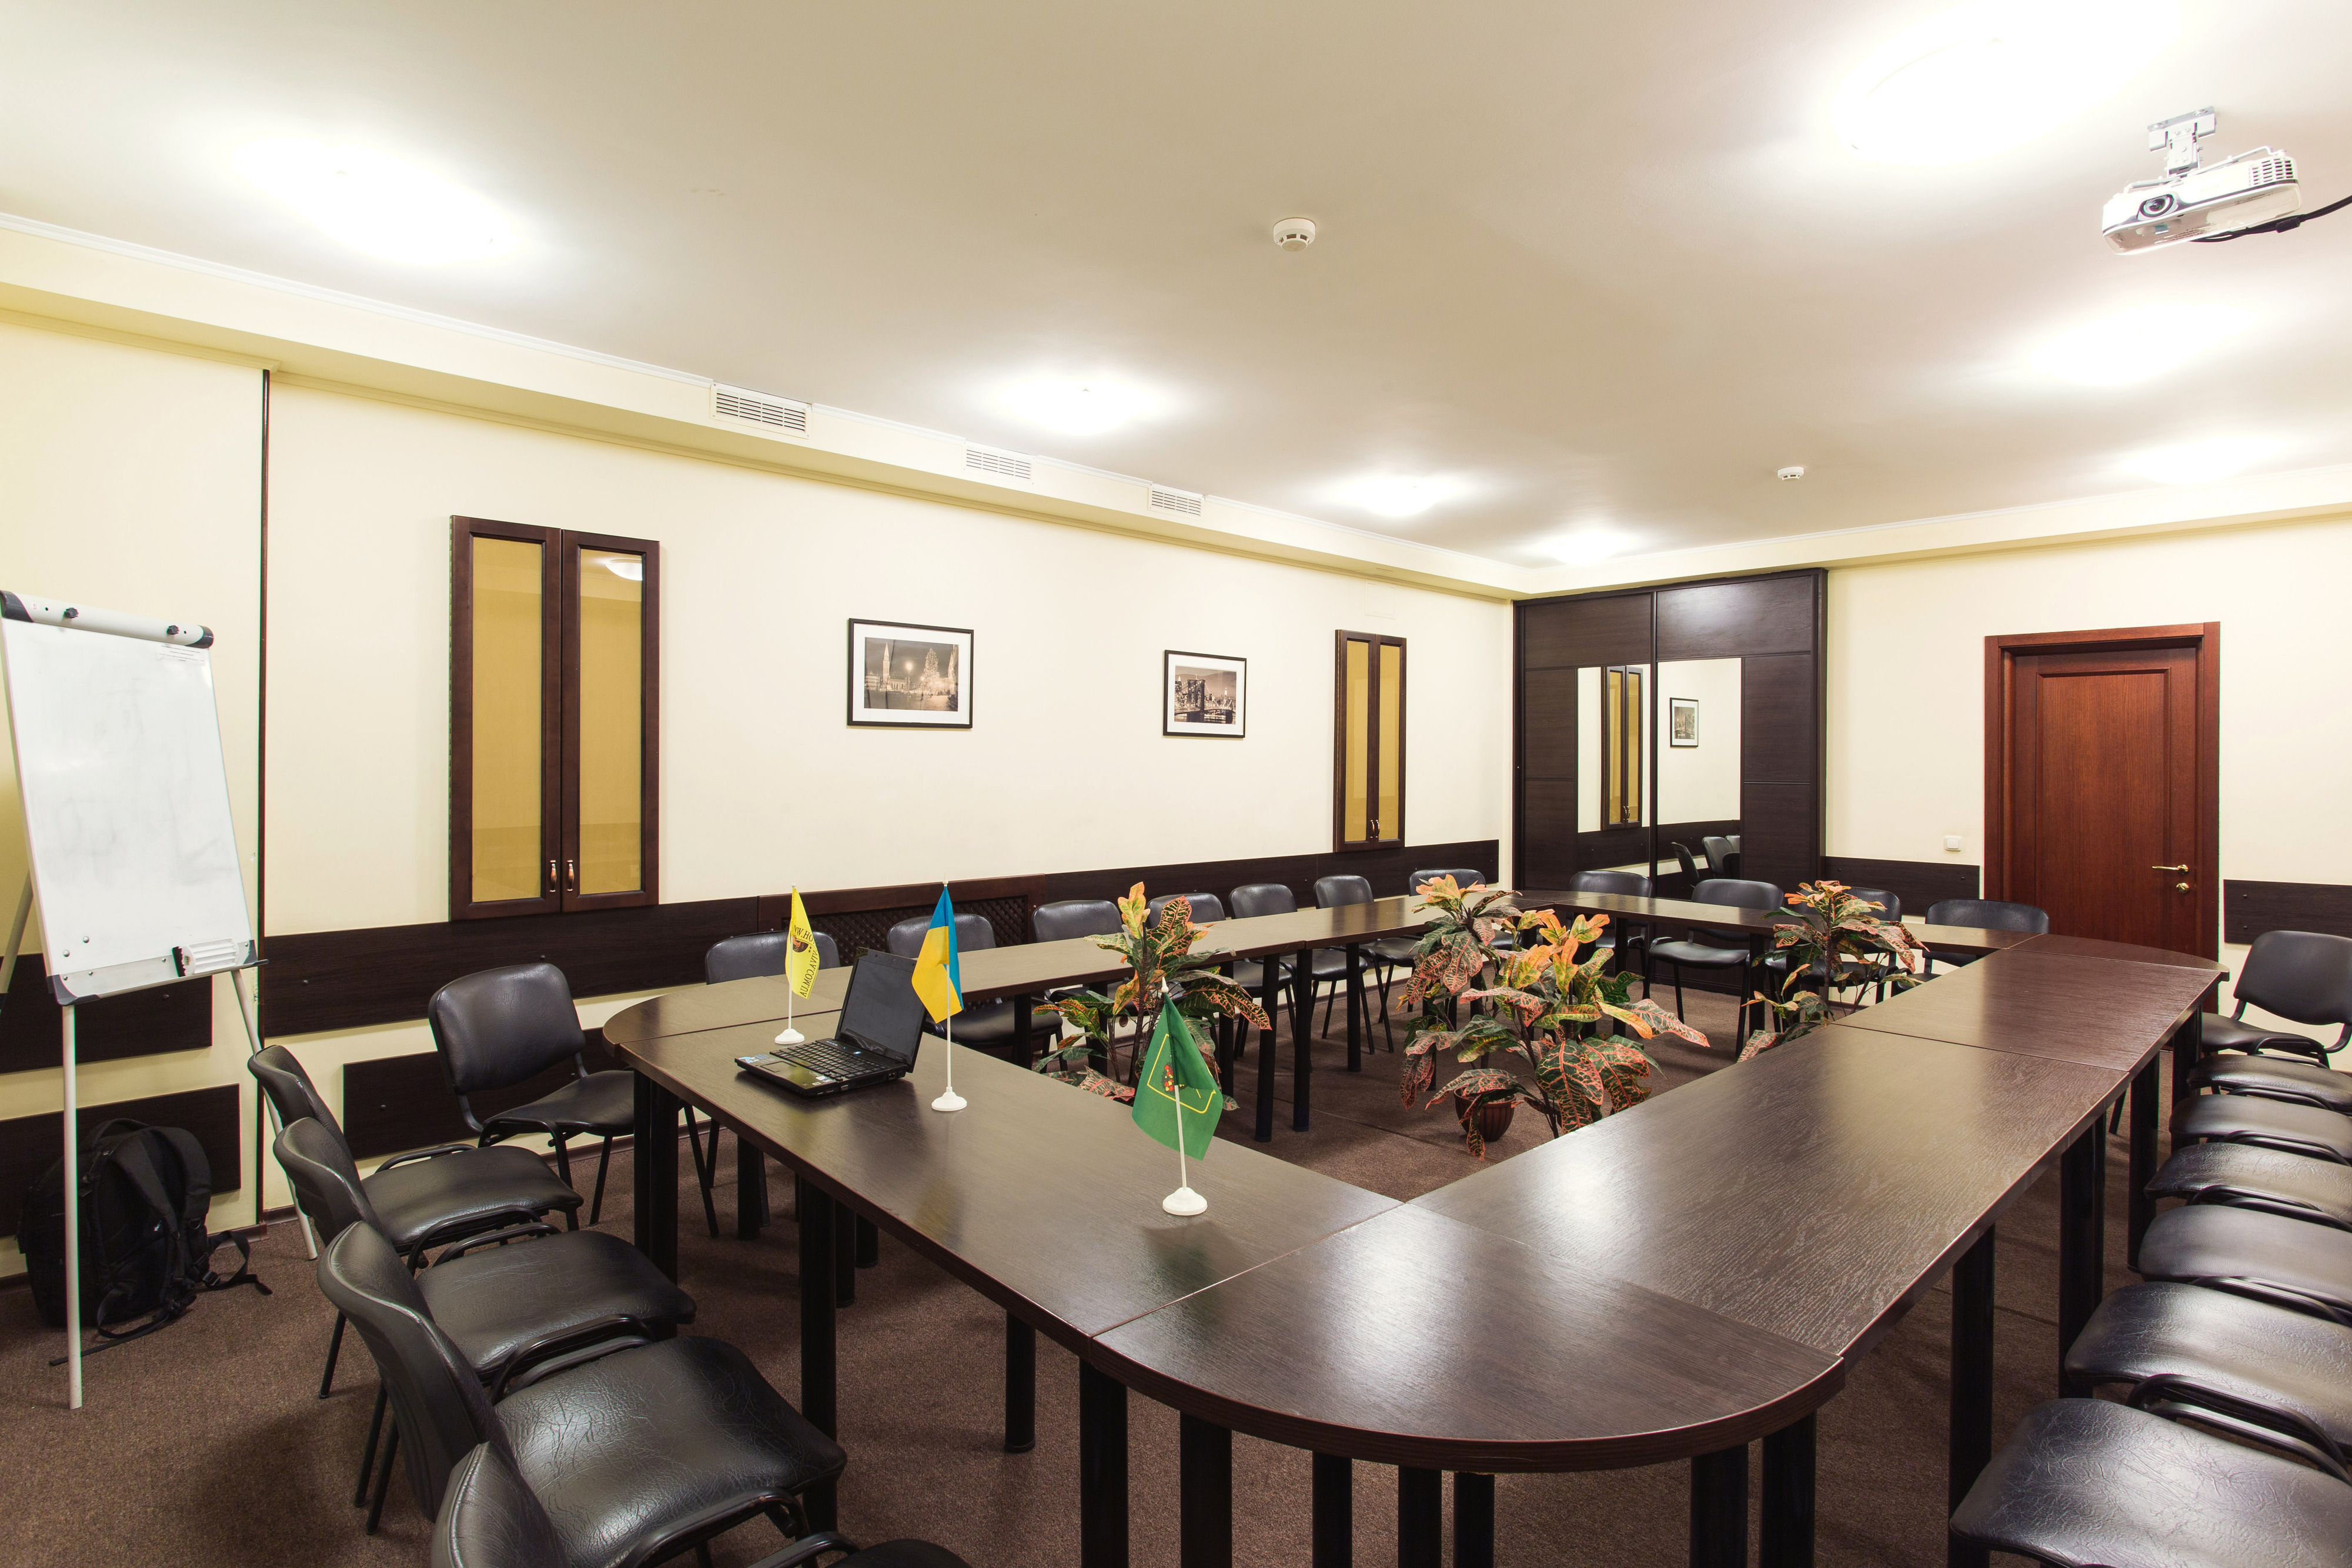 Conference room at the Viva Hotel